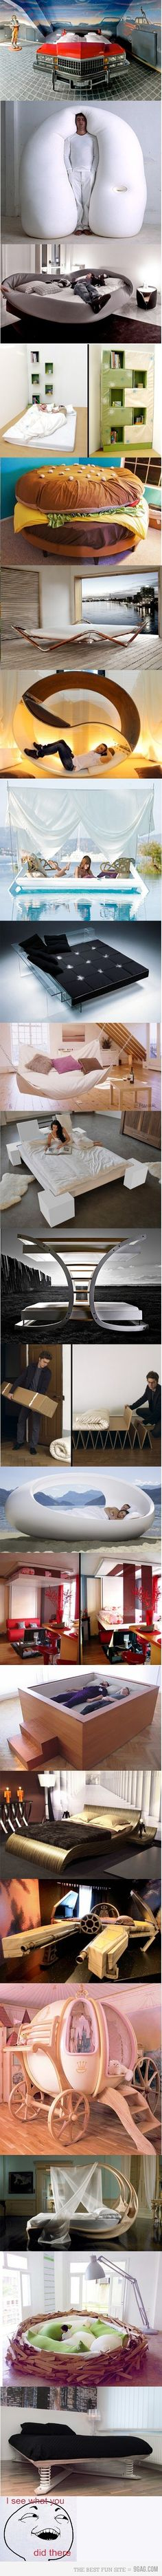 Any of these for my bedroom would be enough, thank you very much. Gahhhh so cool :(( #9GAG